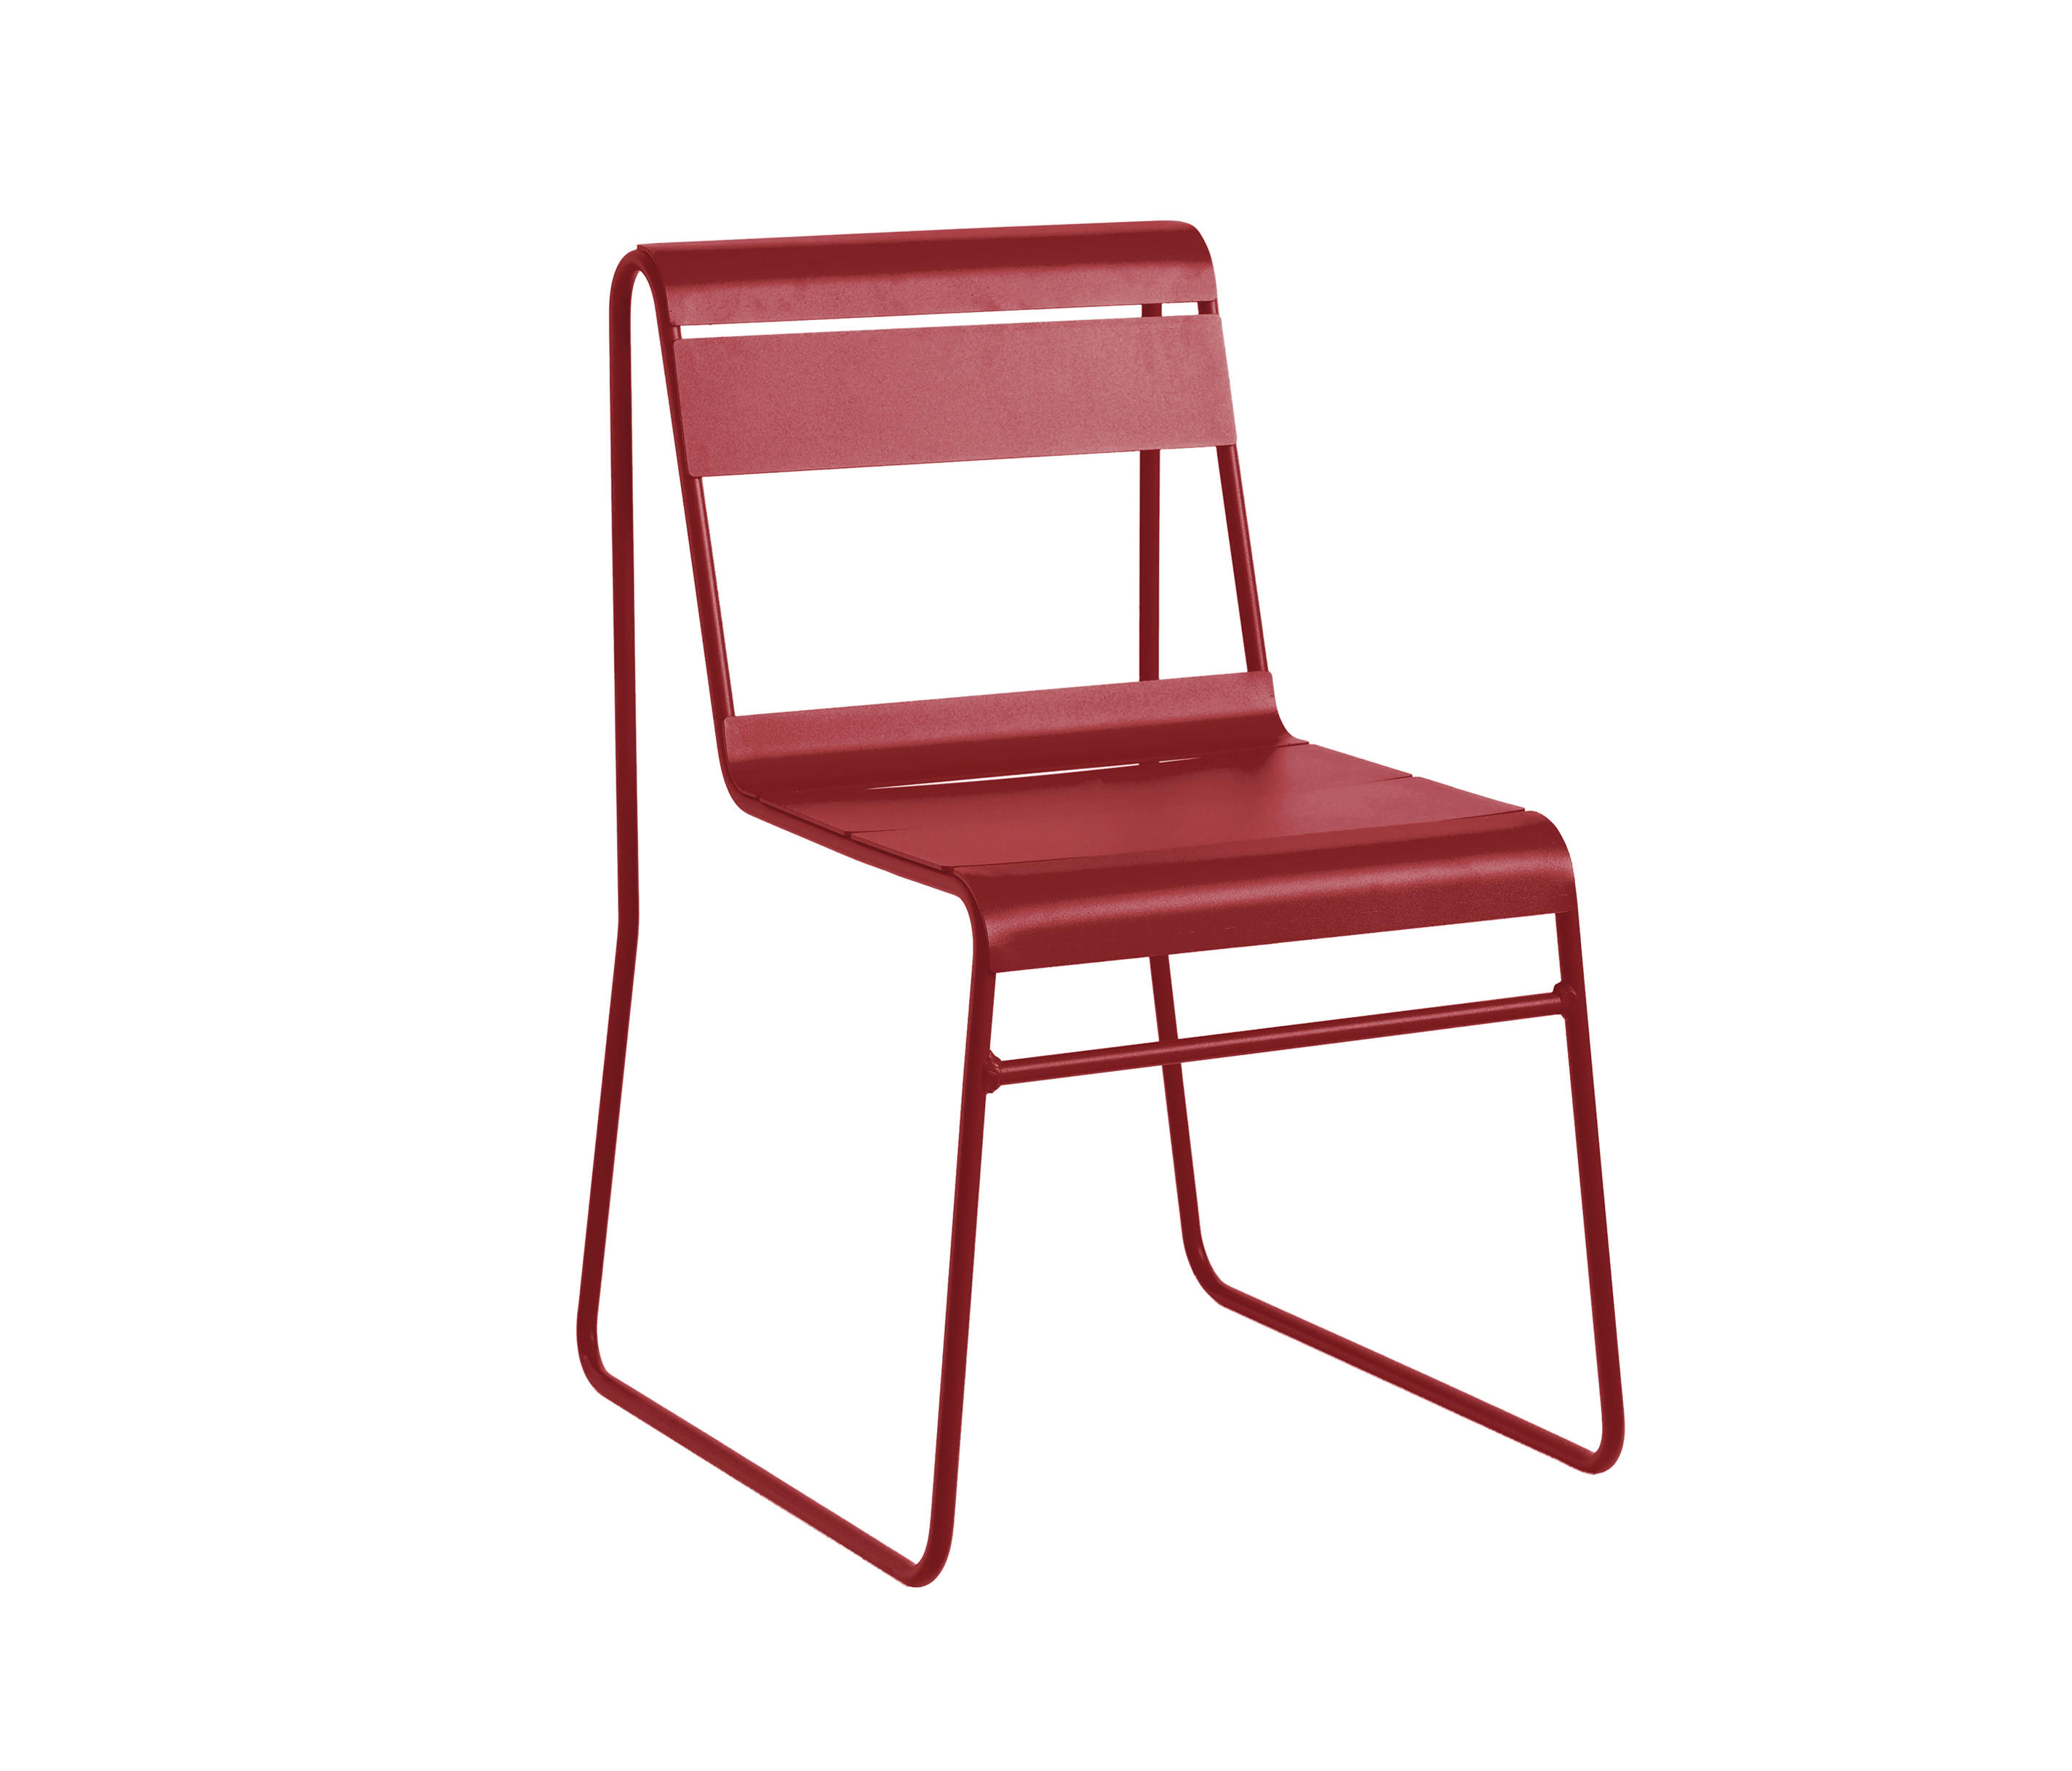 Toscana Chair By ISimar   Chairs